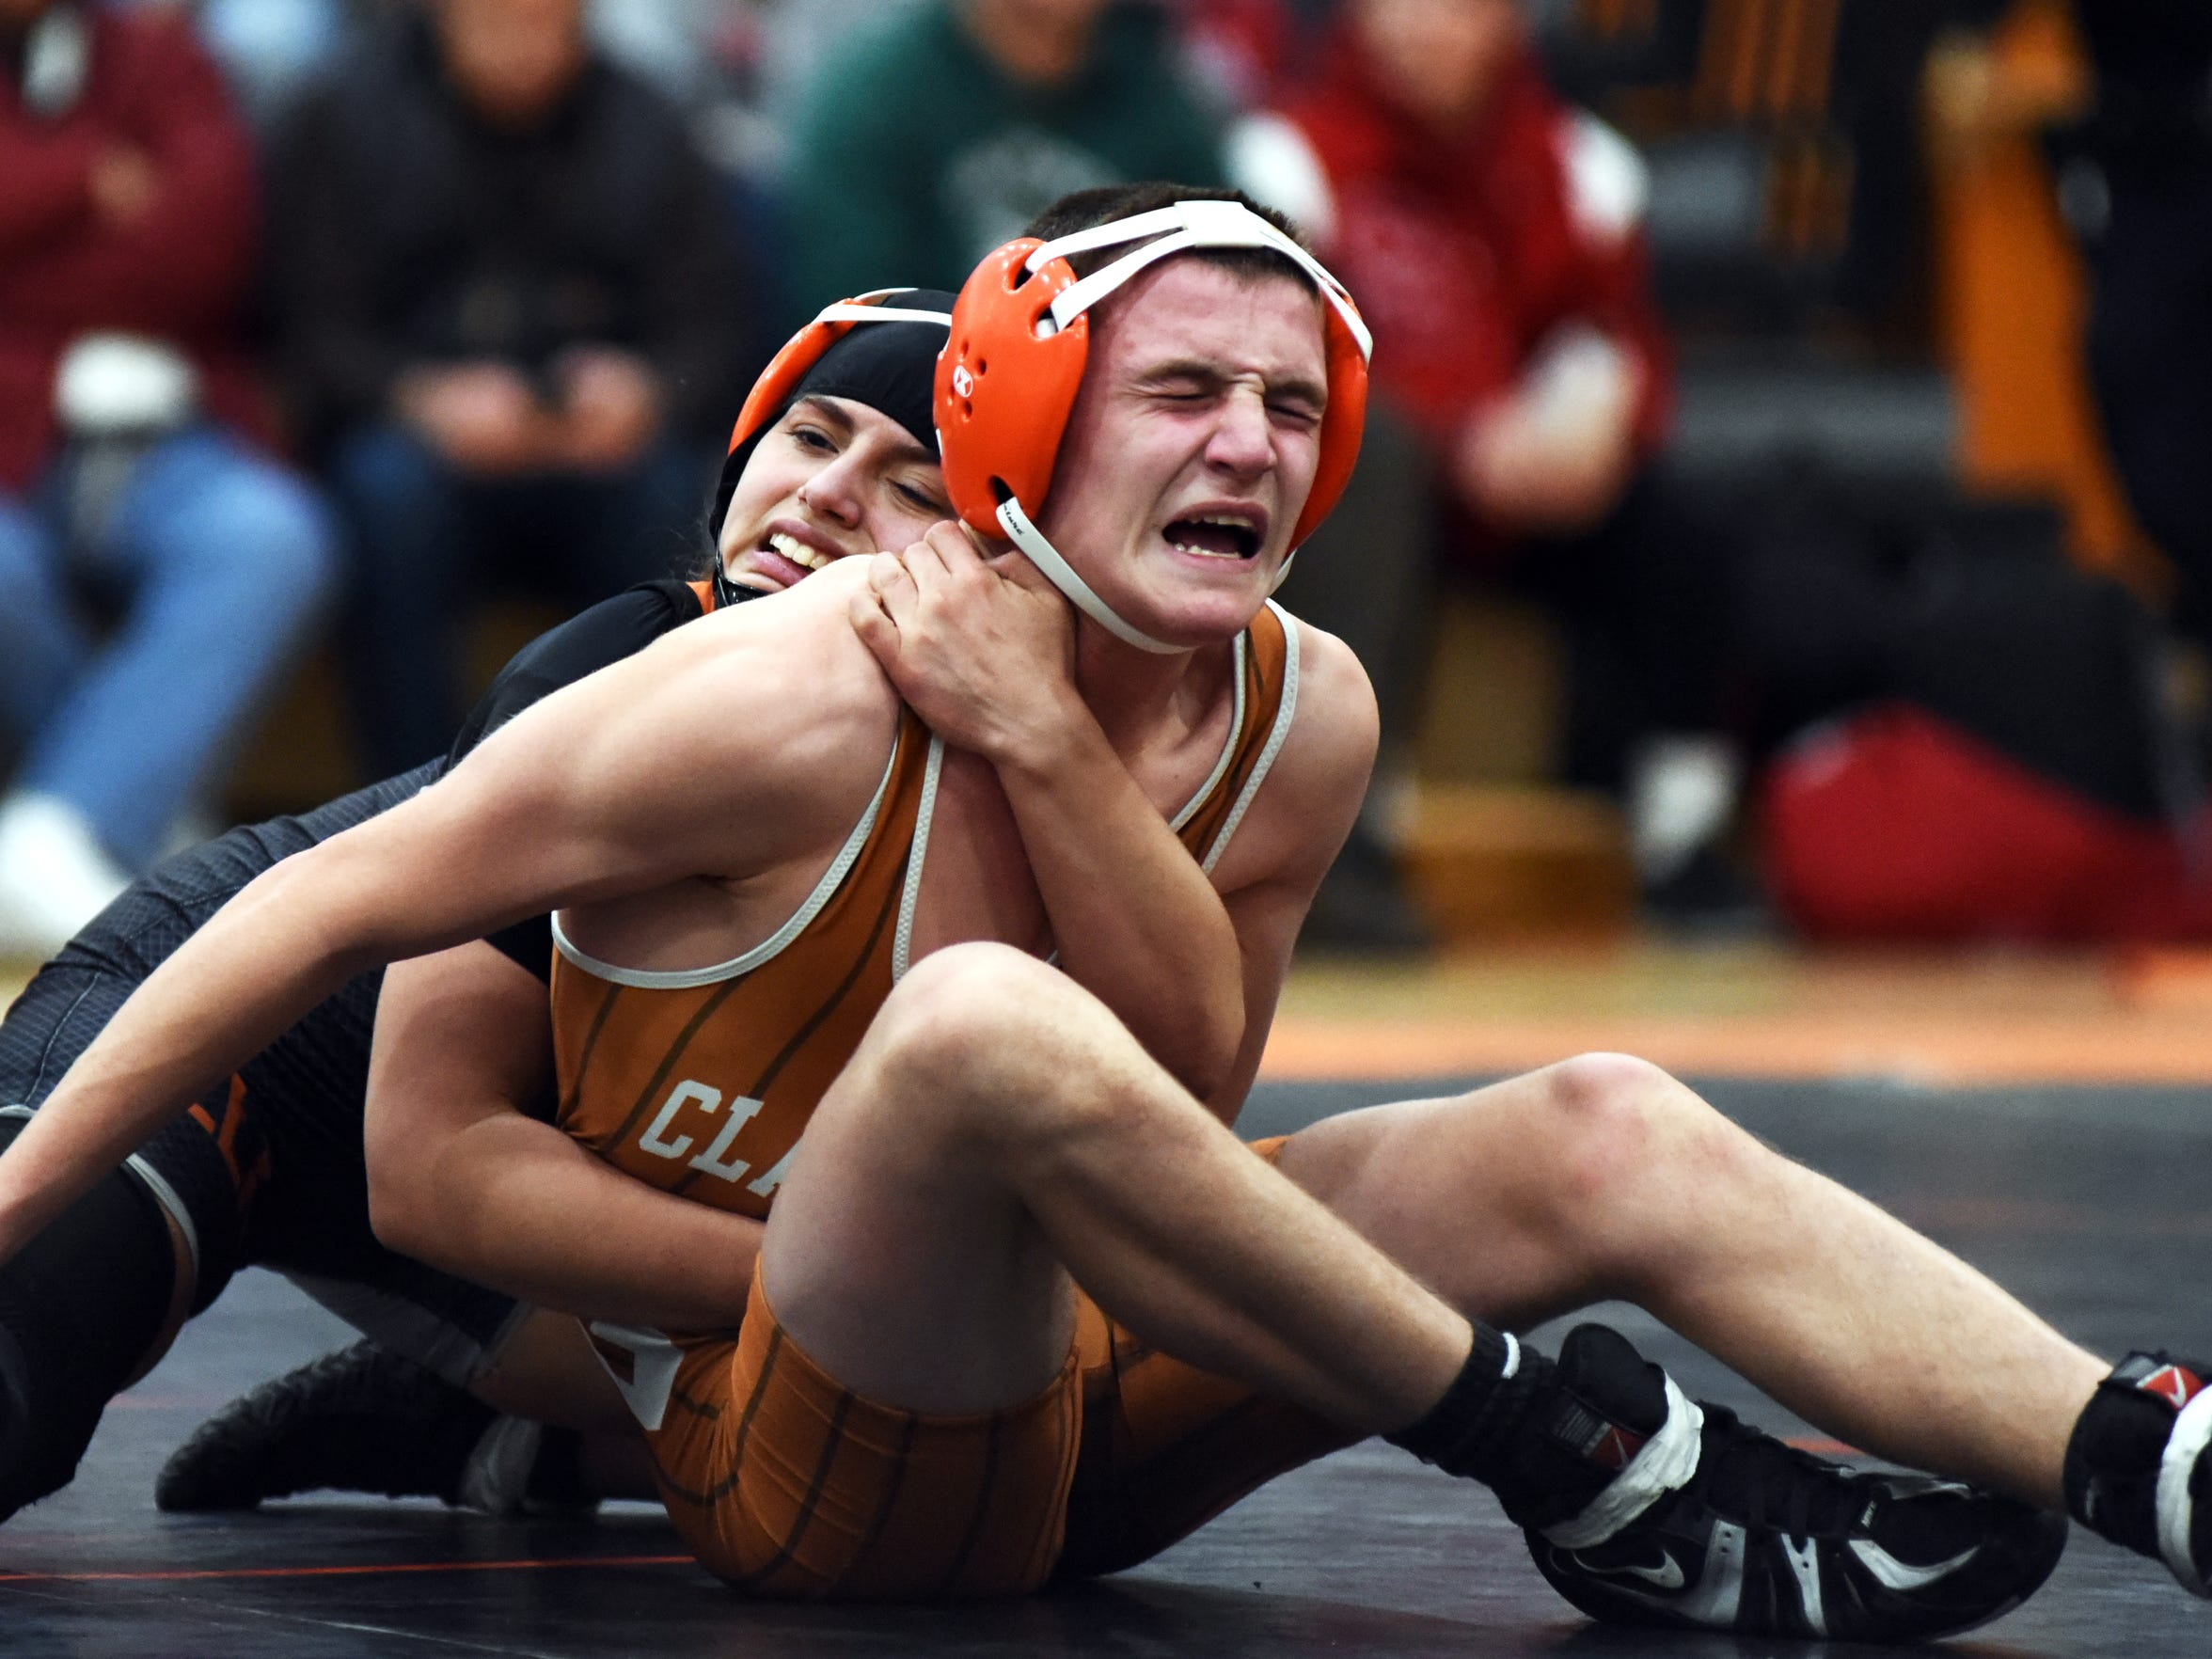 Claymont's Grant Stewart writhes in pain while being